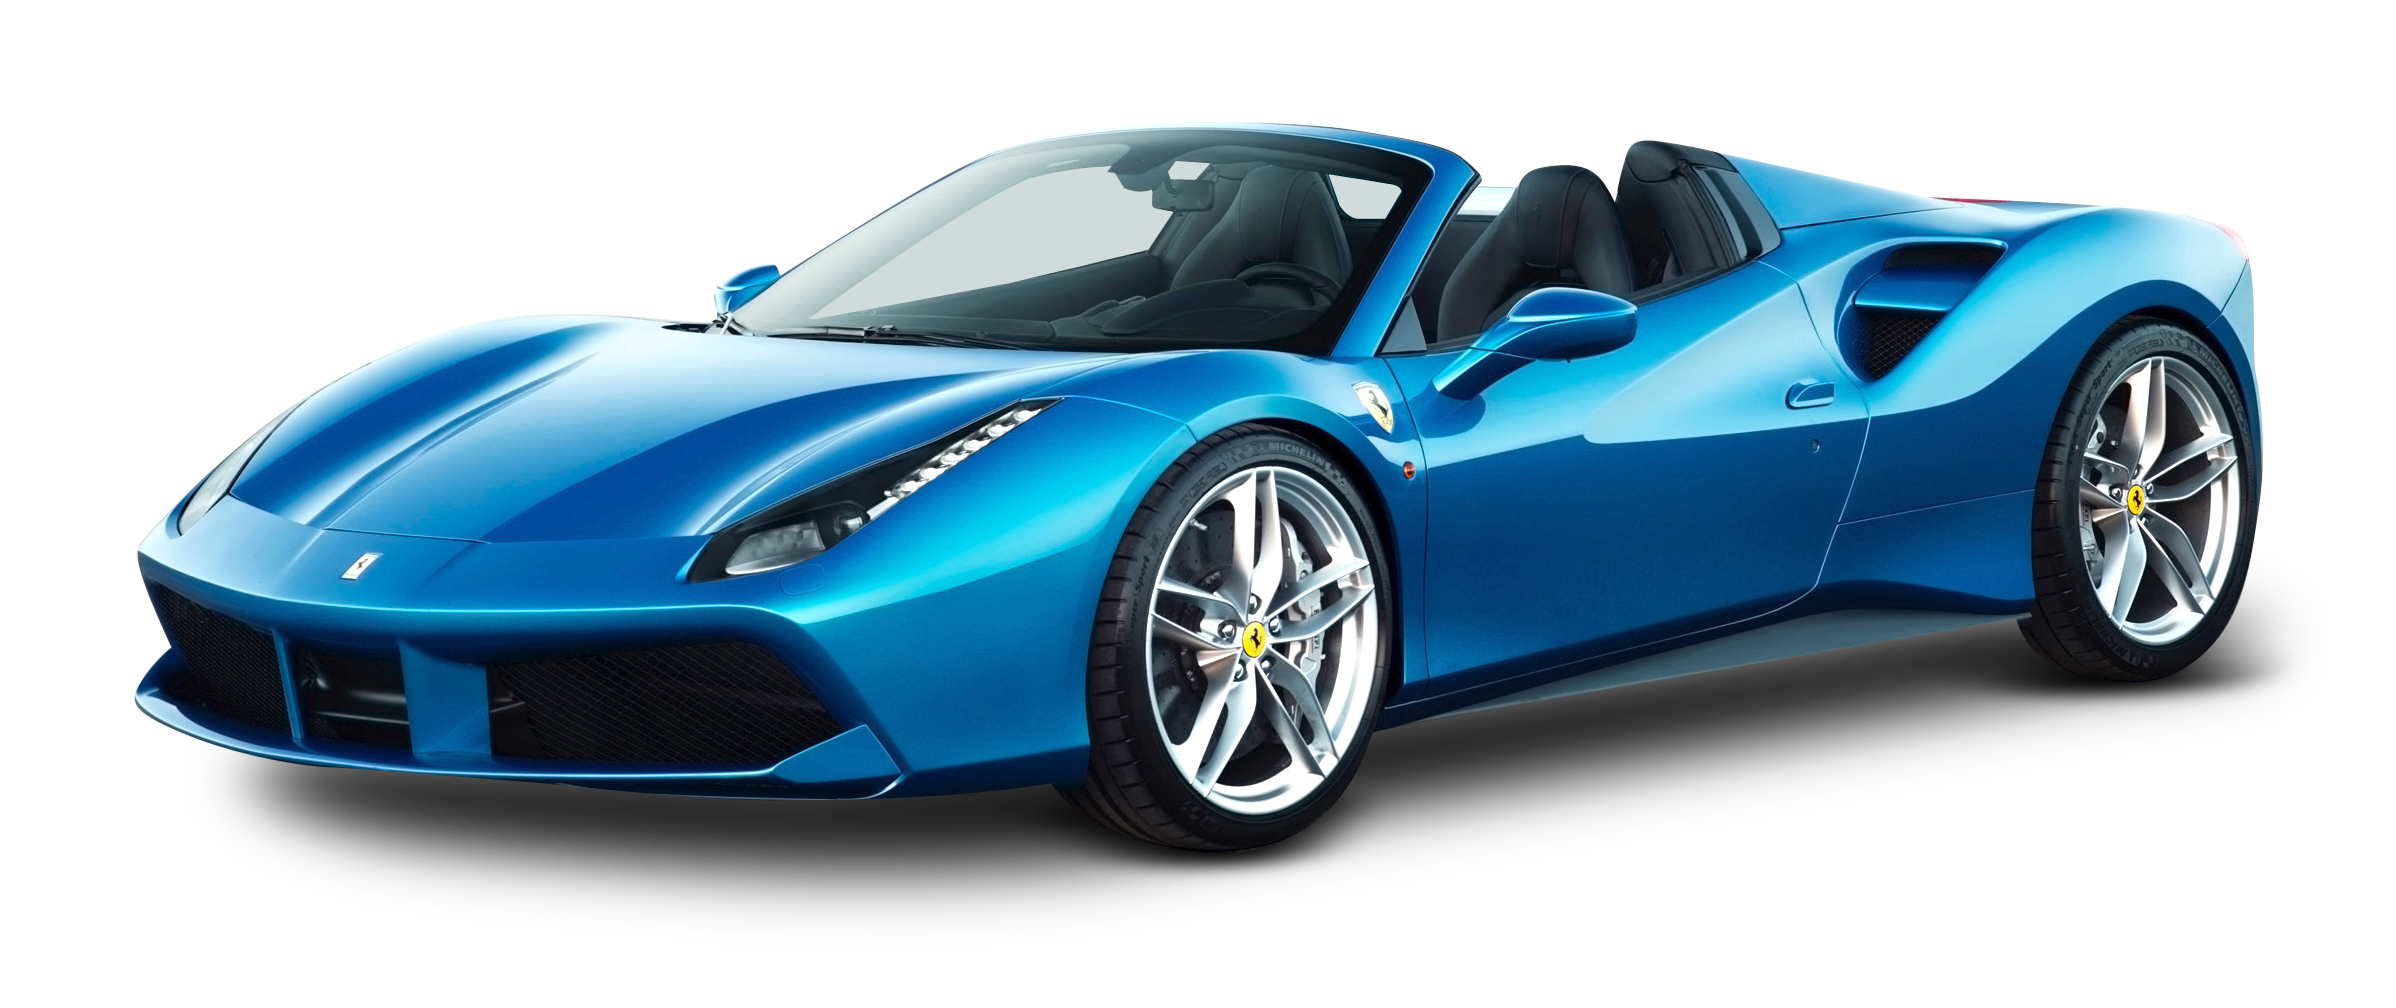 If You Want To Make Choice From The Certified Quality Used Cars You Will Definitely Find The Best Value For Money Deals With Ferrari Car Ferrari 488 Ferrari